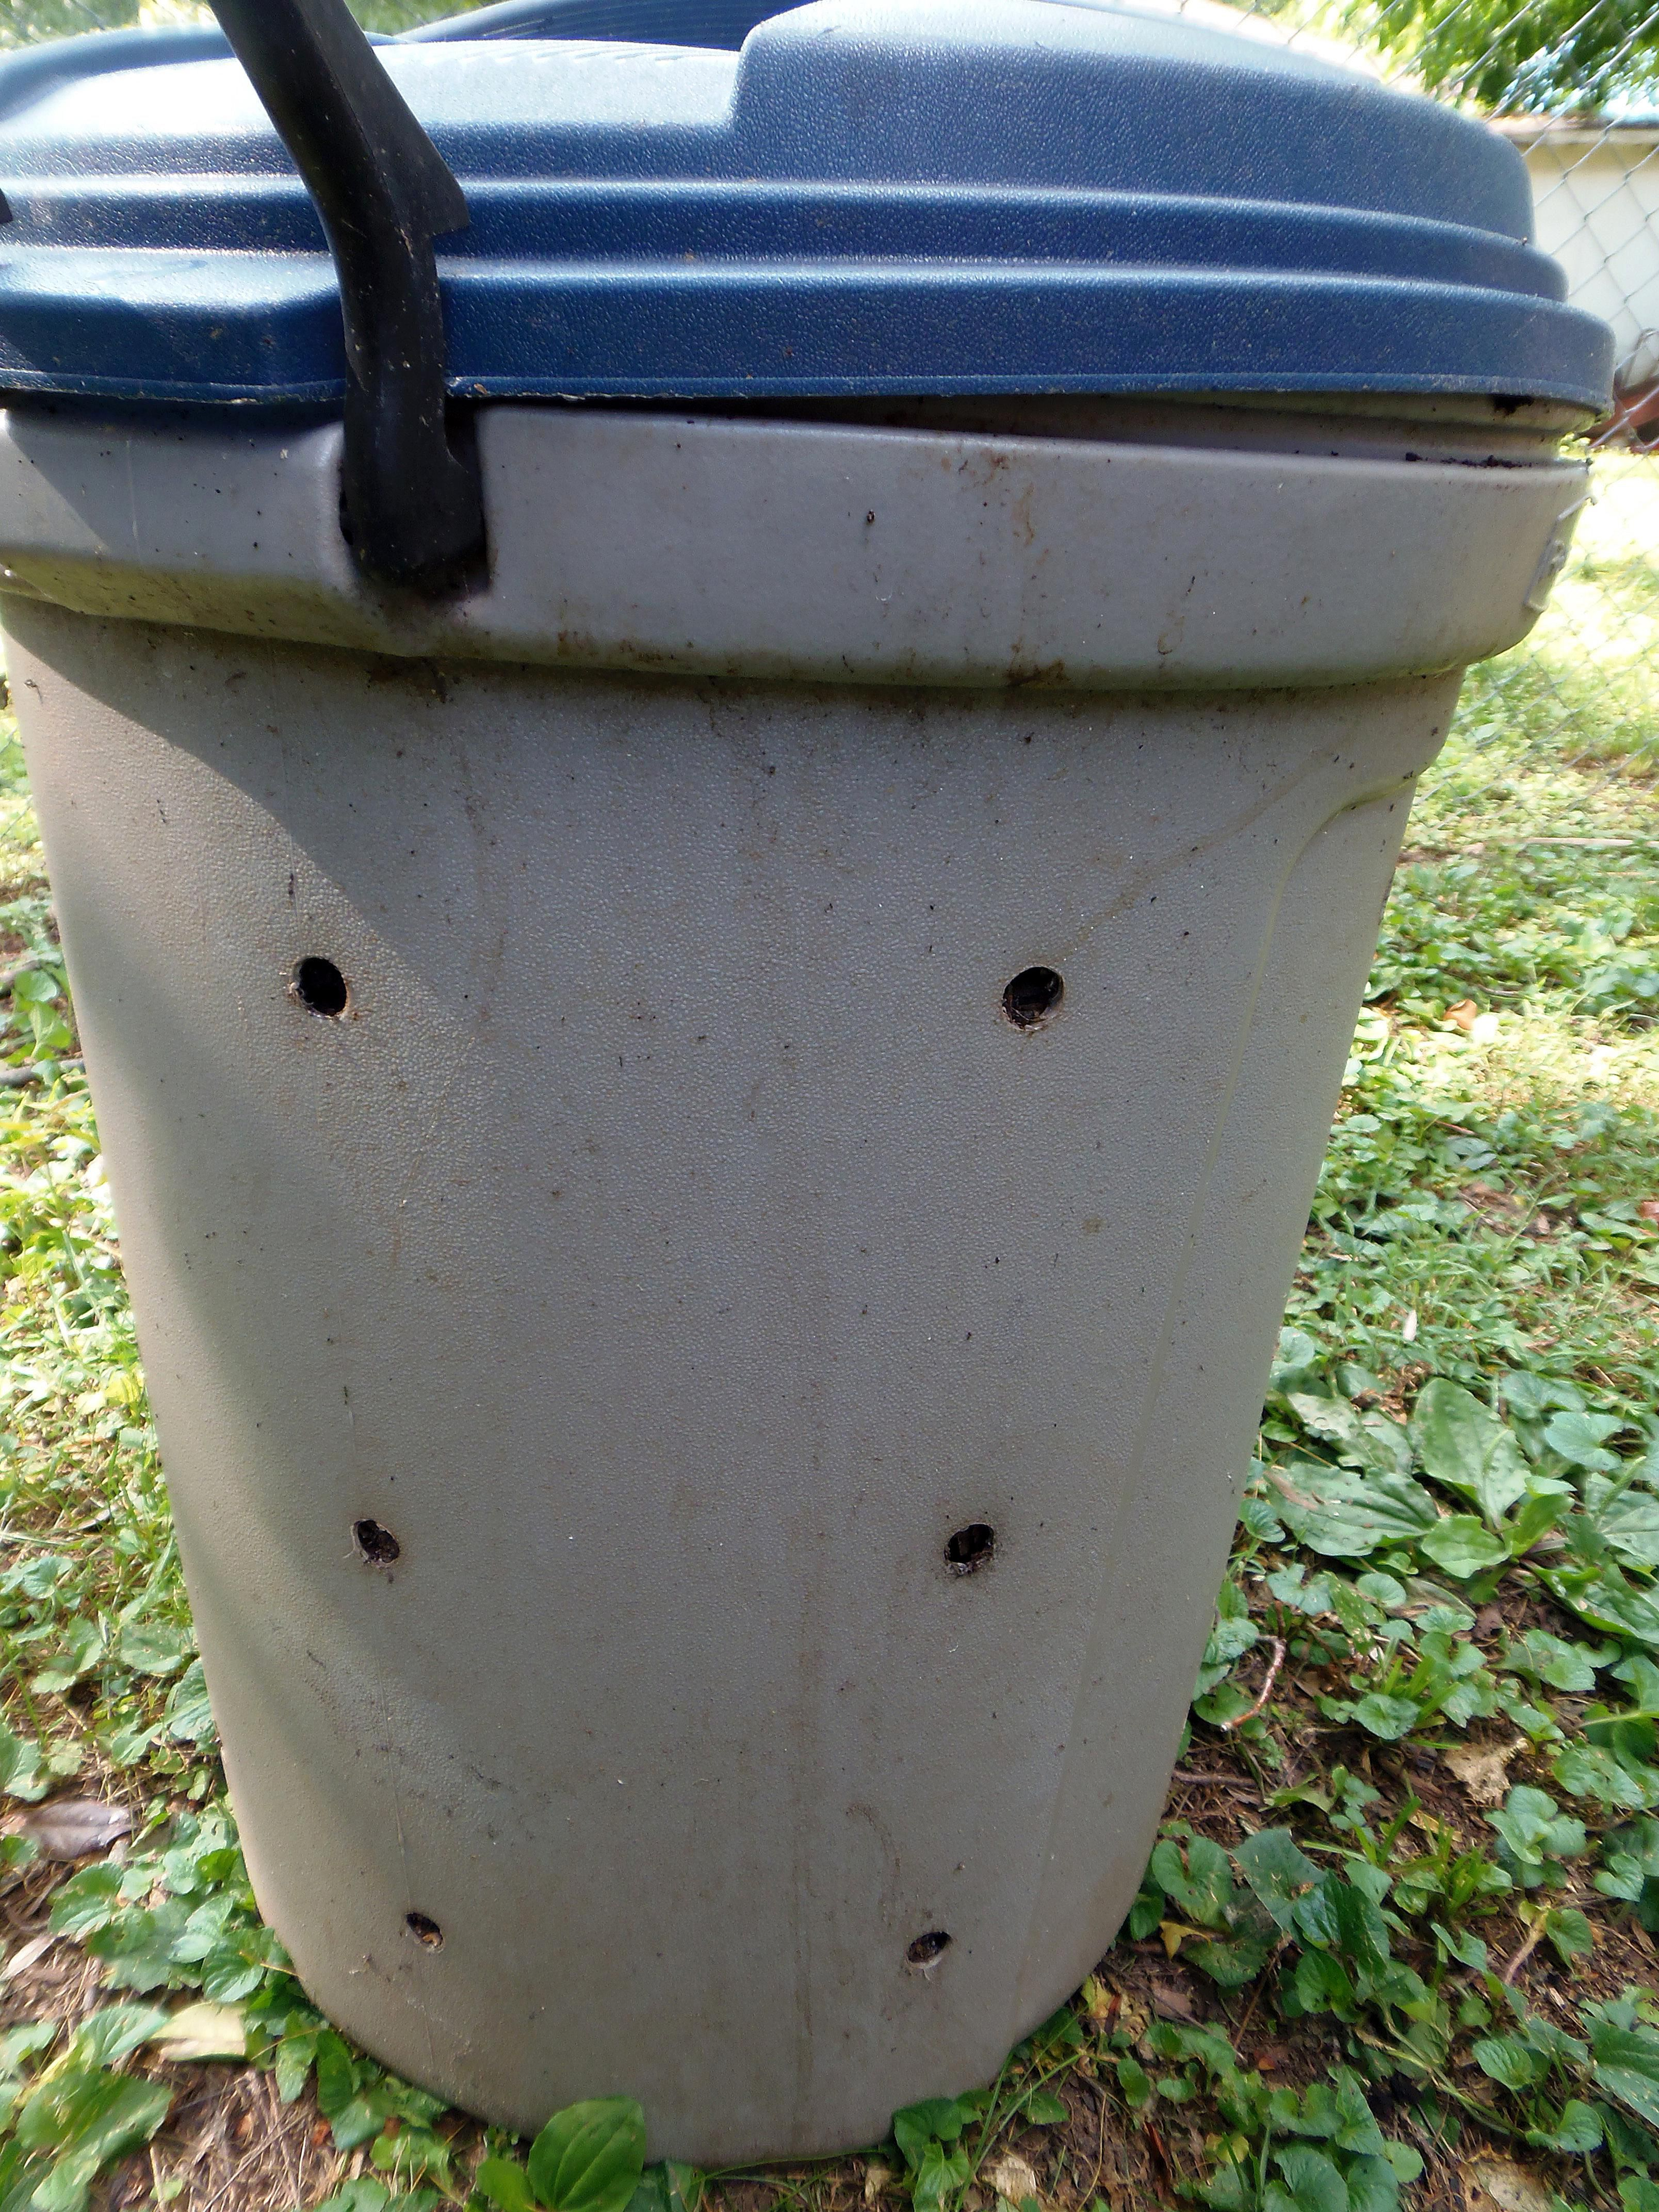 Want a Compost Bin? Here's How to Make One From a Trash Can